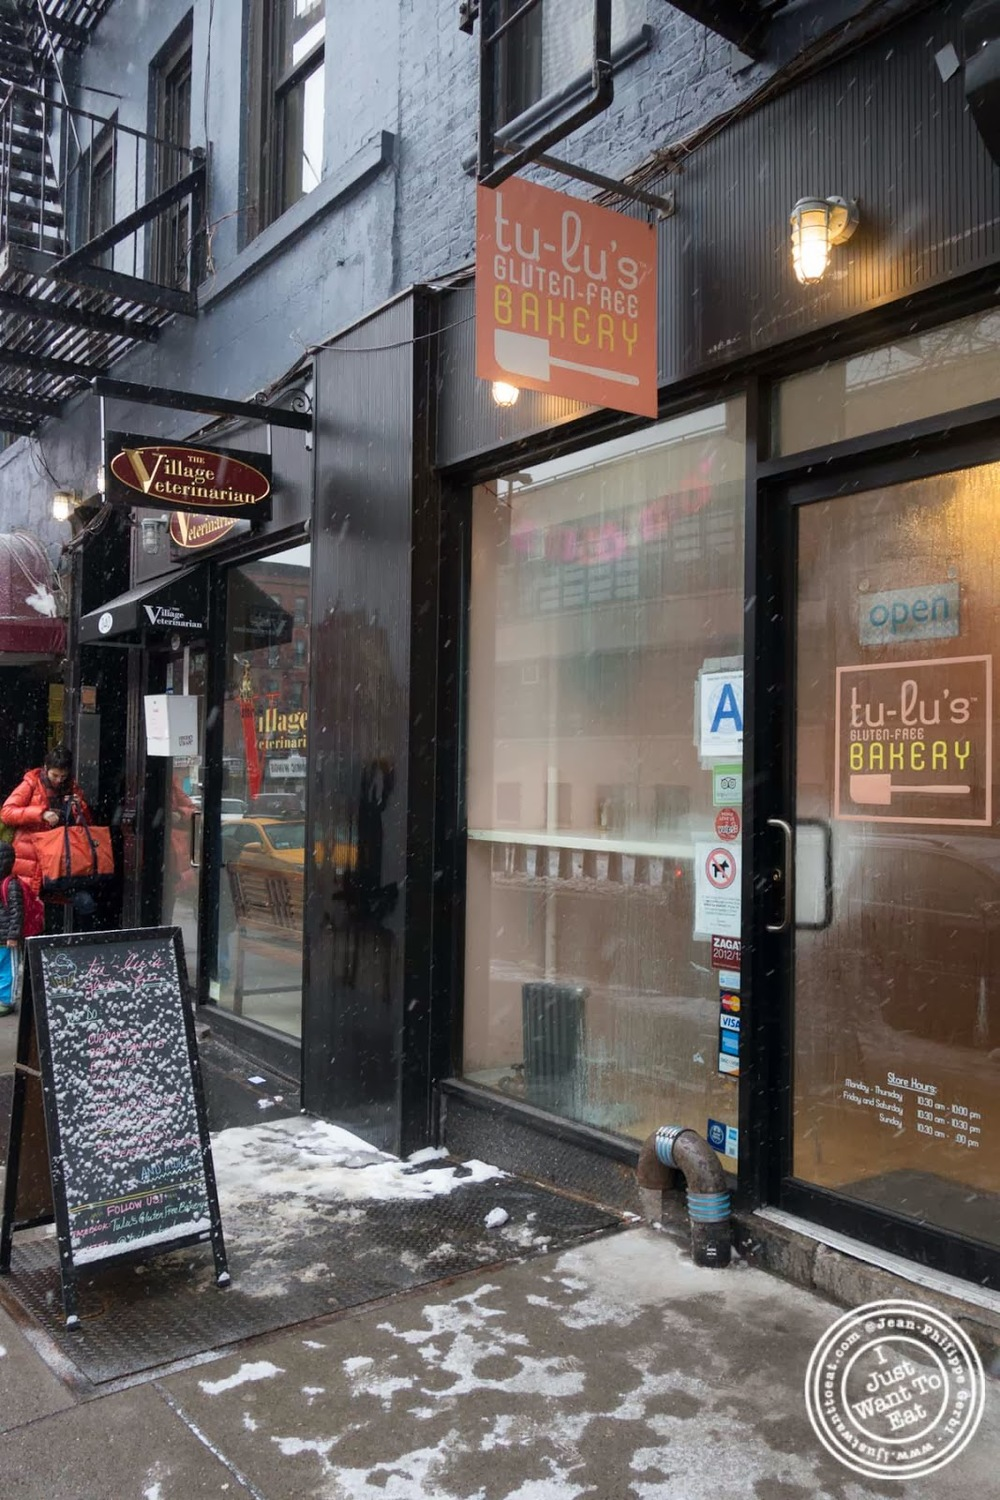 image of Tu-Lu's gluten free bakery in the East Village - NYC, New York